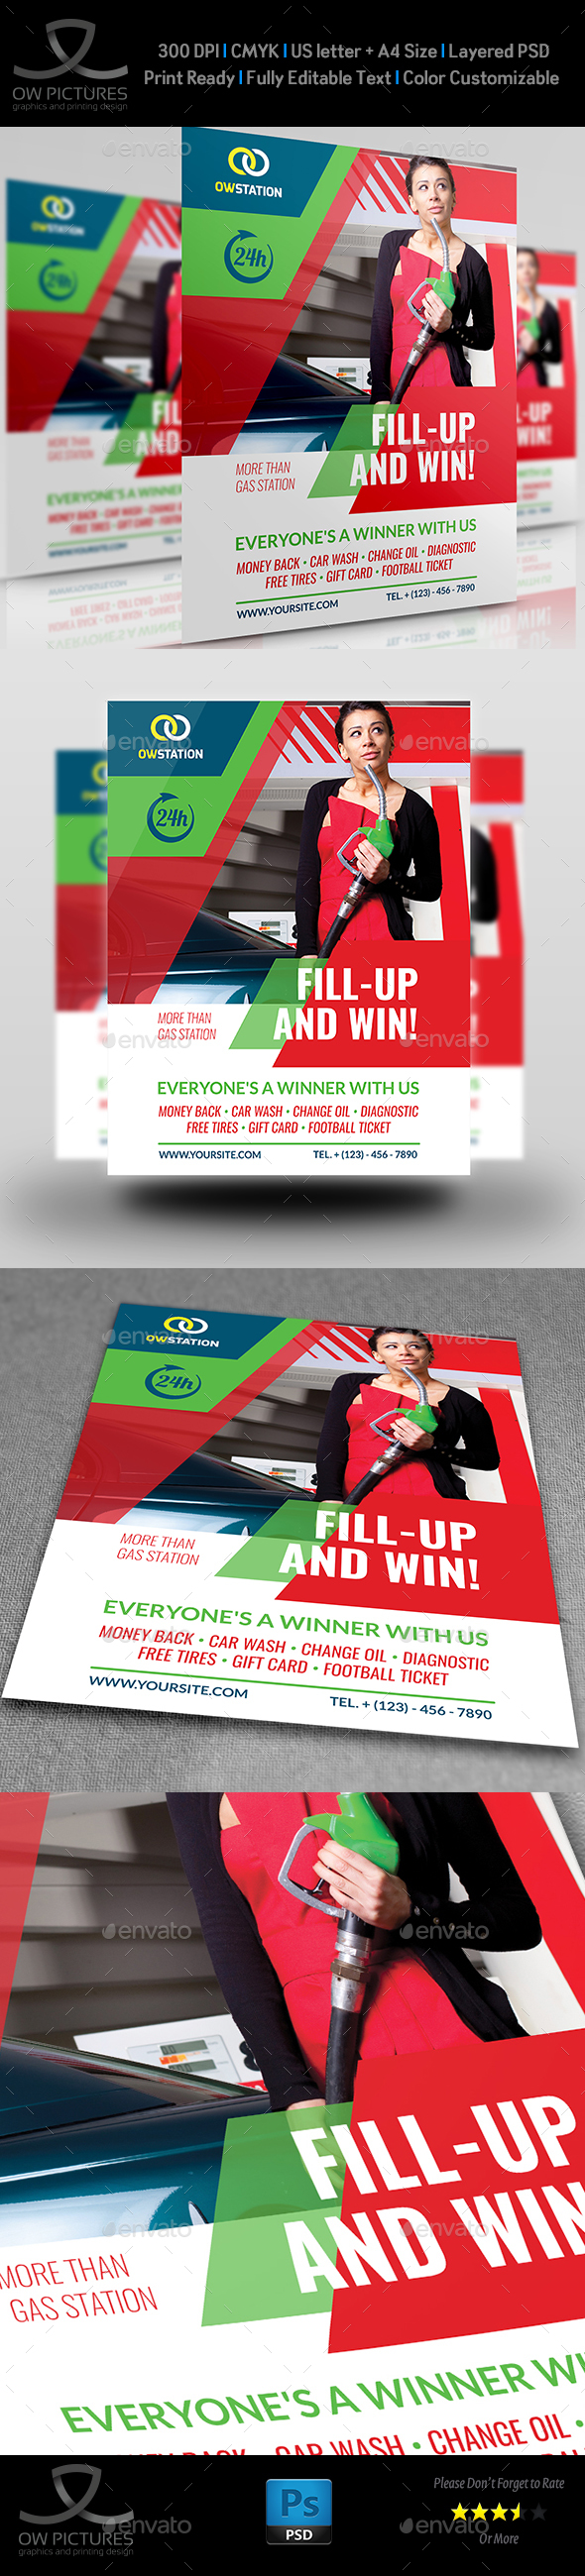 Gas Station Flyer Template Vol.3 - Commerce Flyers